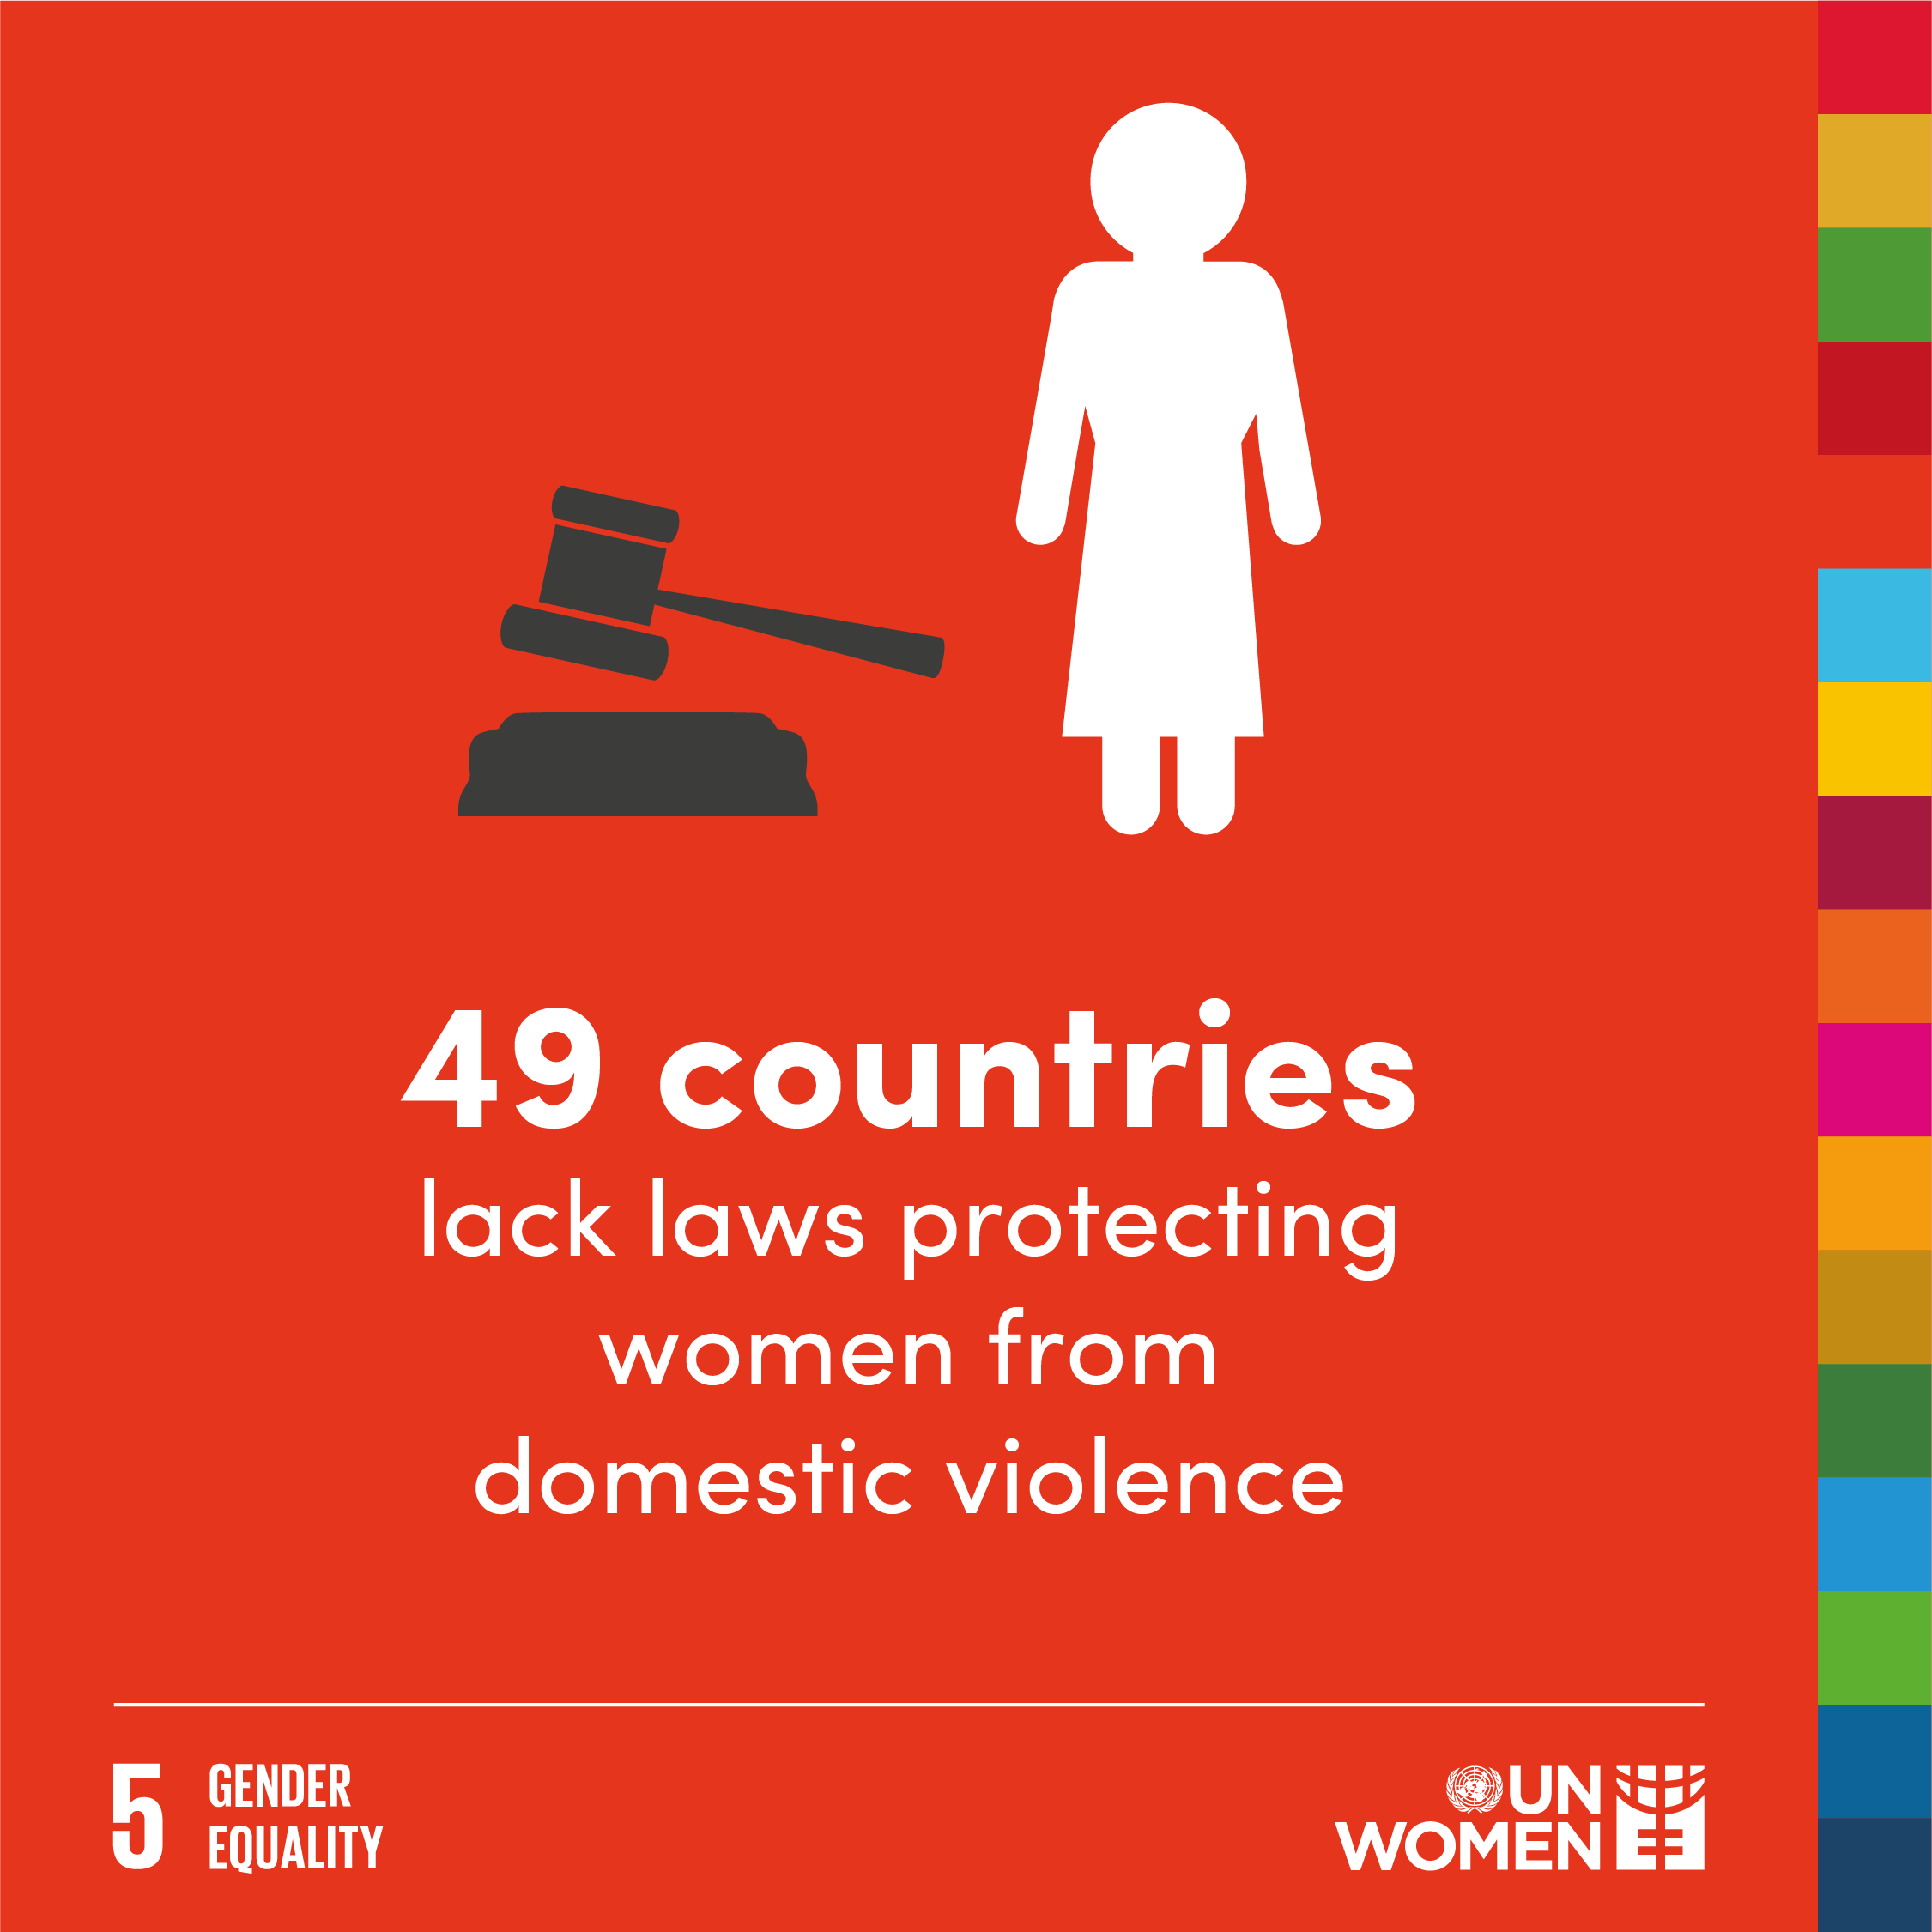 49 countries lack laws protecting women from domestic violence.